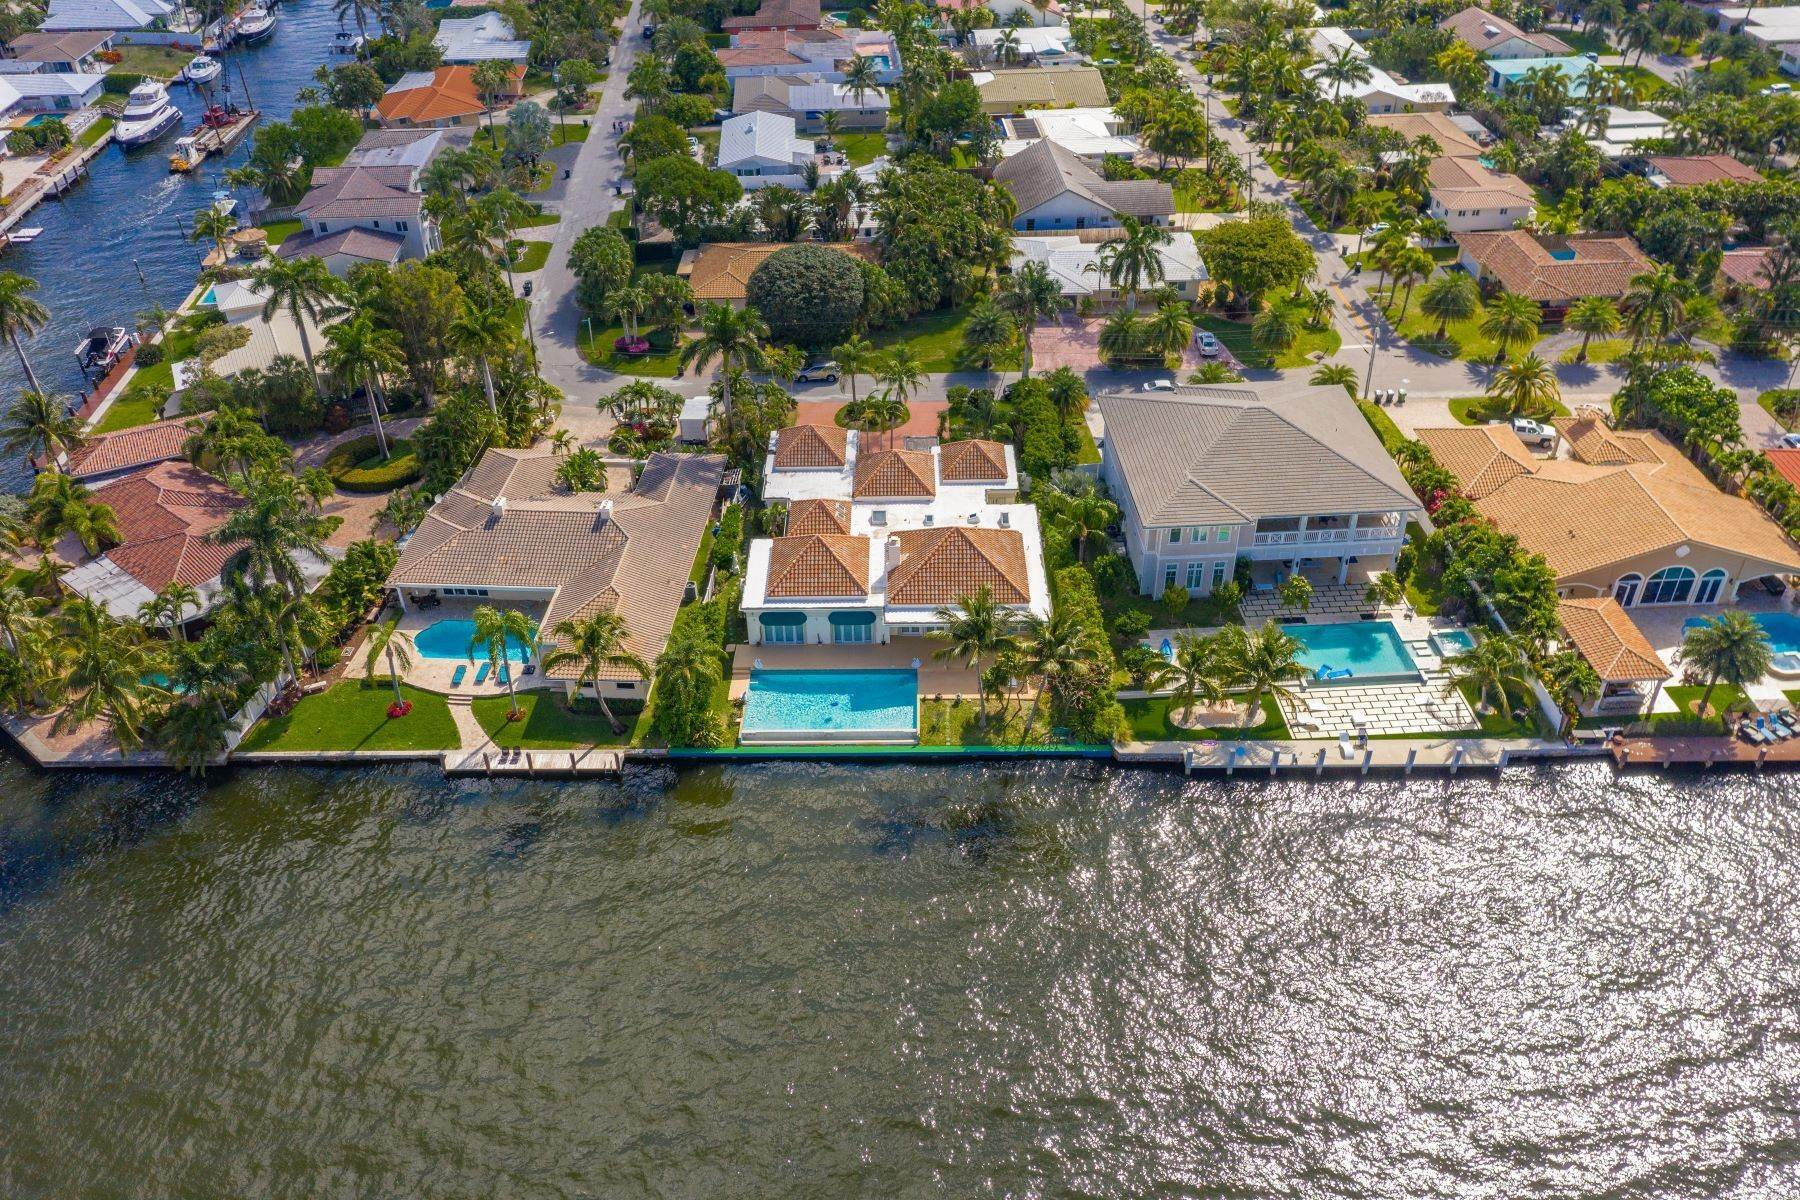 Single Family Homes for Sale at 293 Tropic Dr, Lauderdale By The Sea, FL 293 Tropic Dr Lauderdale By The Sea, Florida 33308 United States